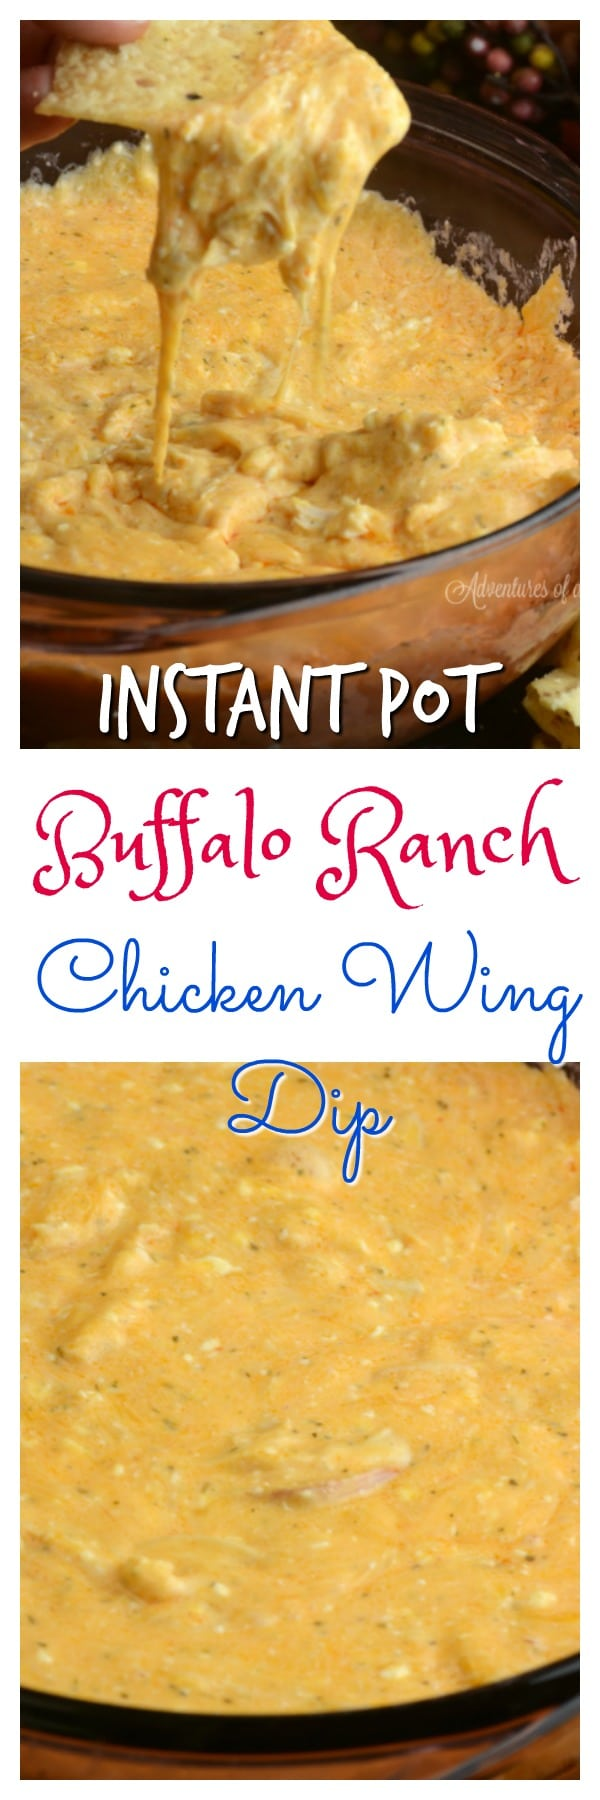 buffalo-ranch-chicken-wing-dip